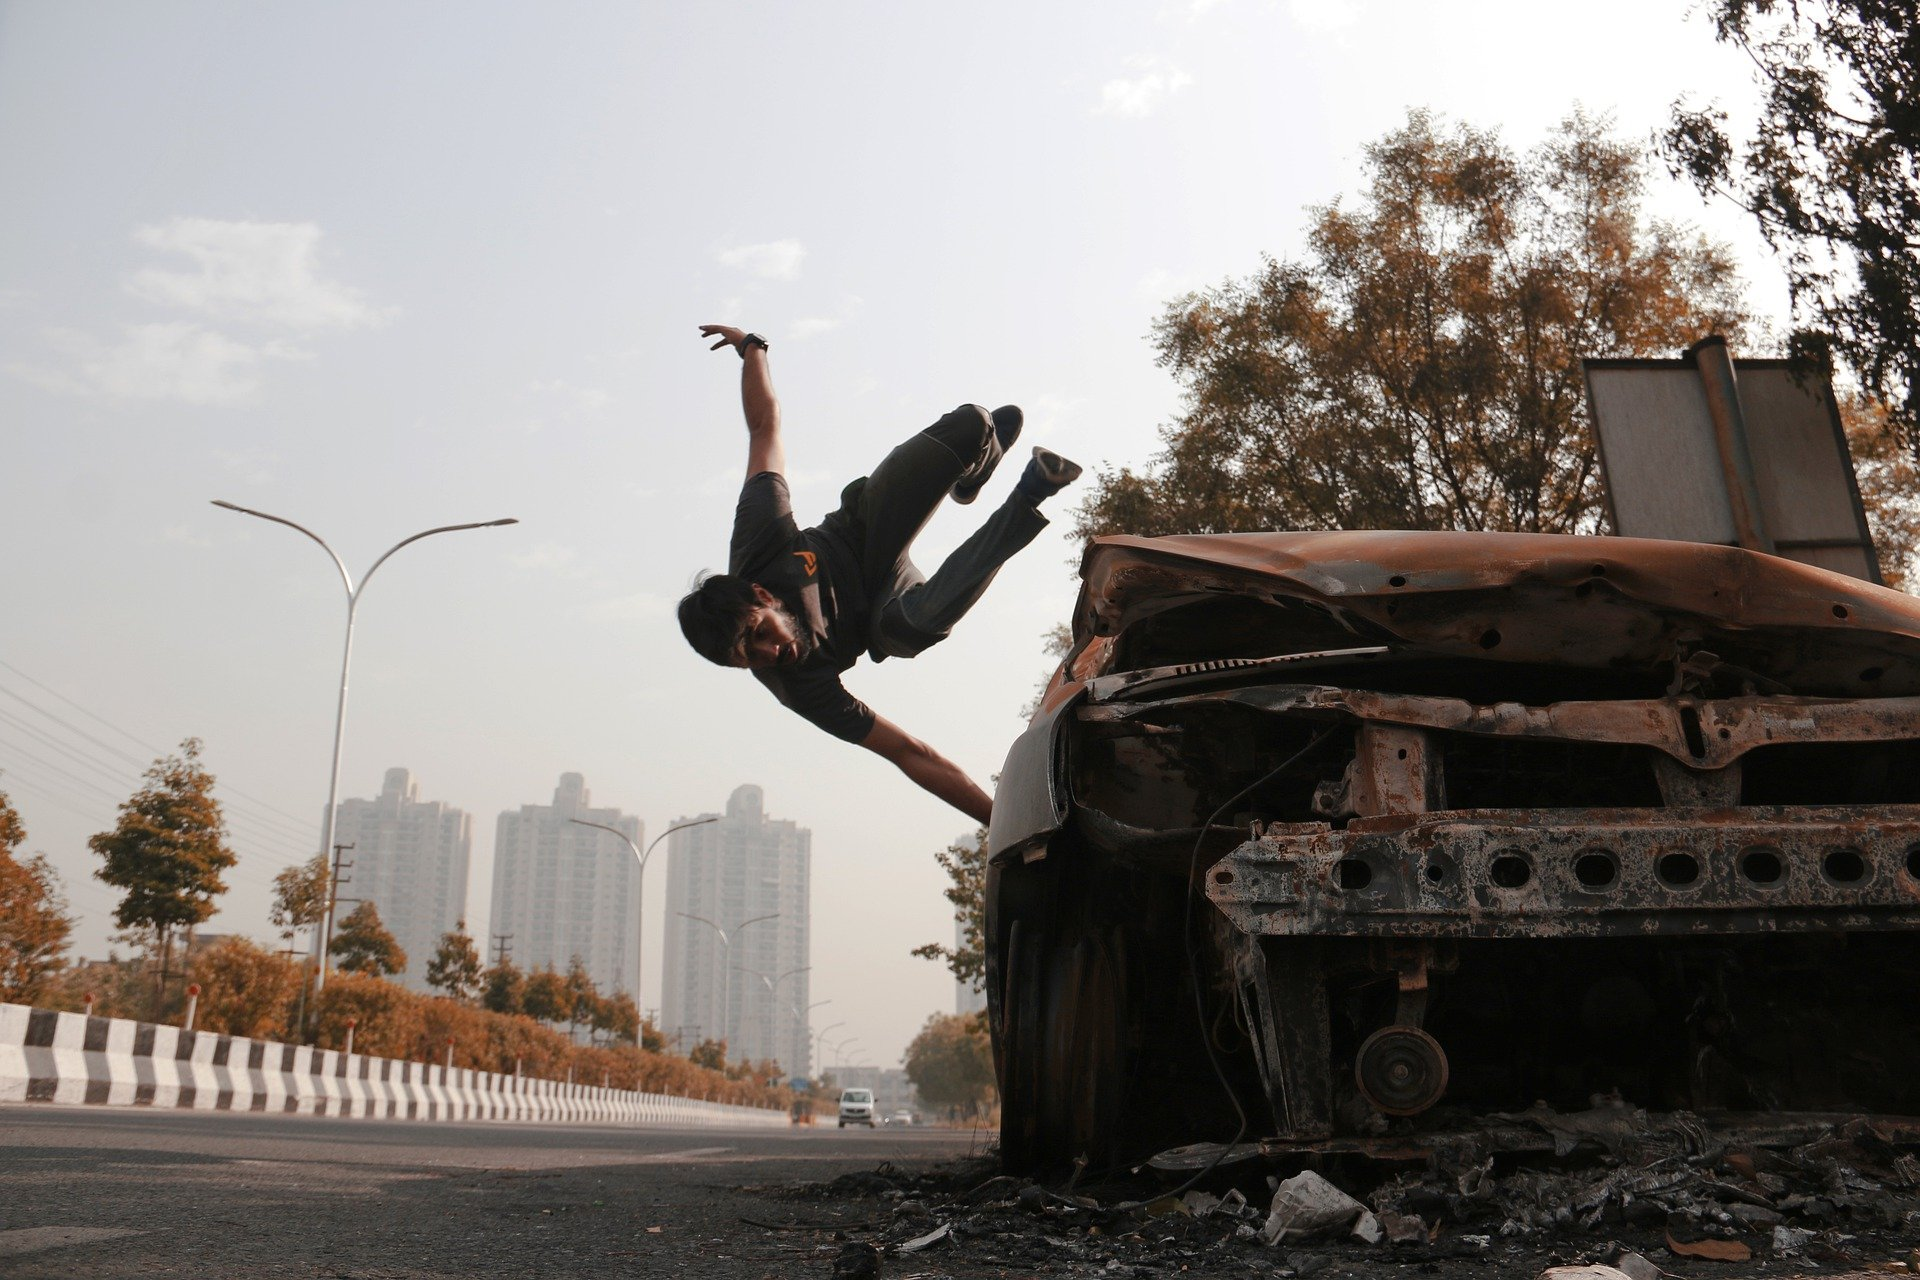 A tracer practicing his parkour skills.   Source: Pixabay.